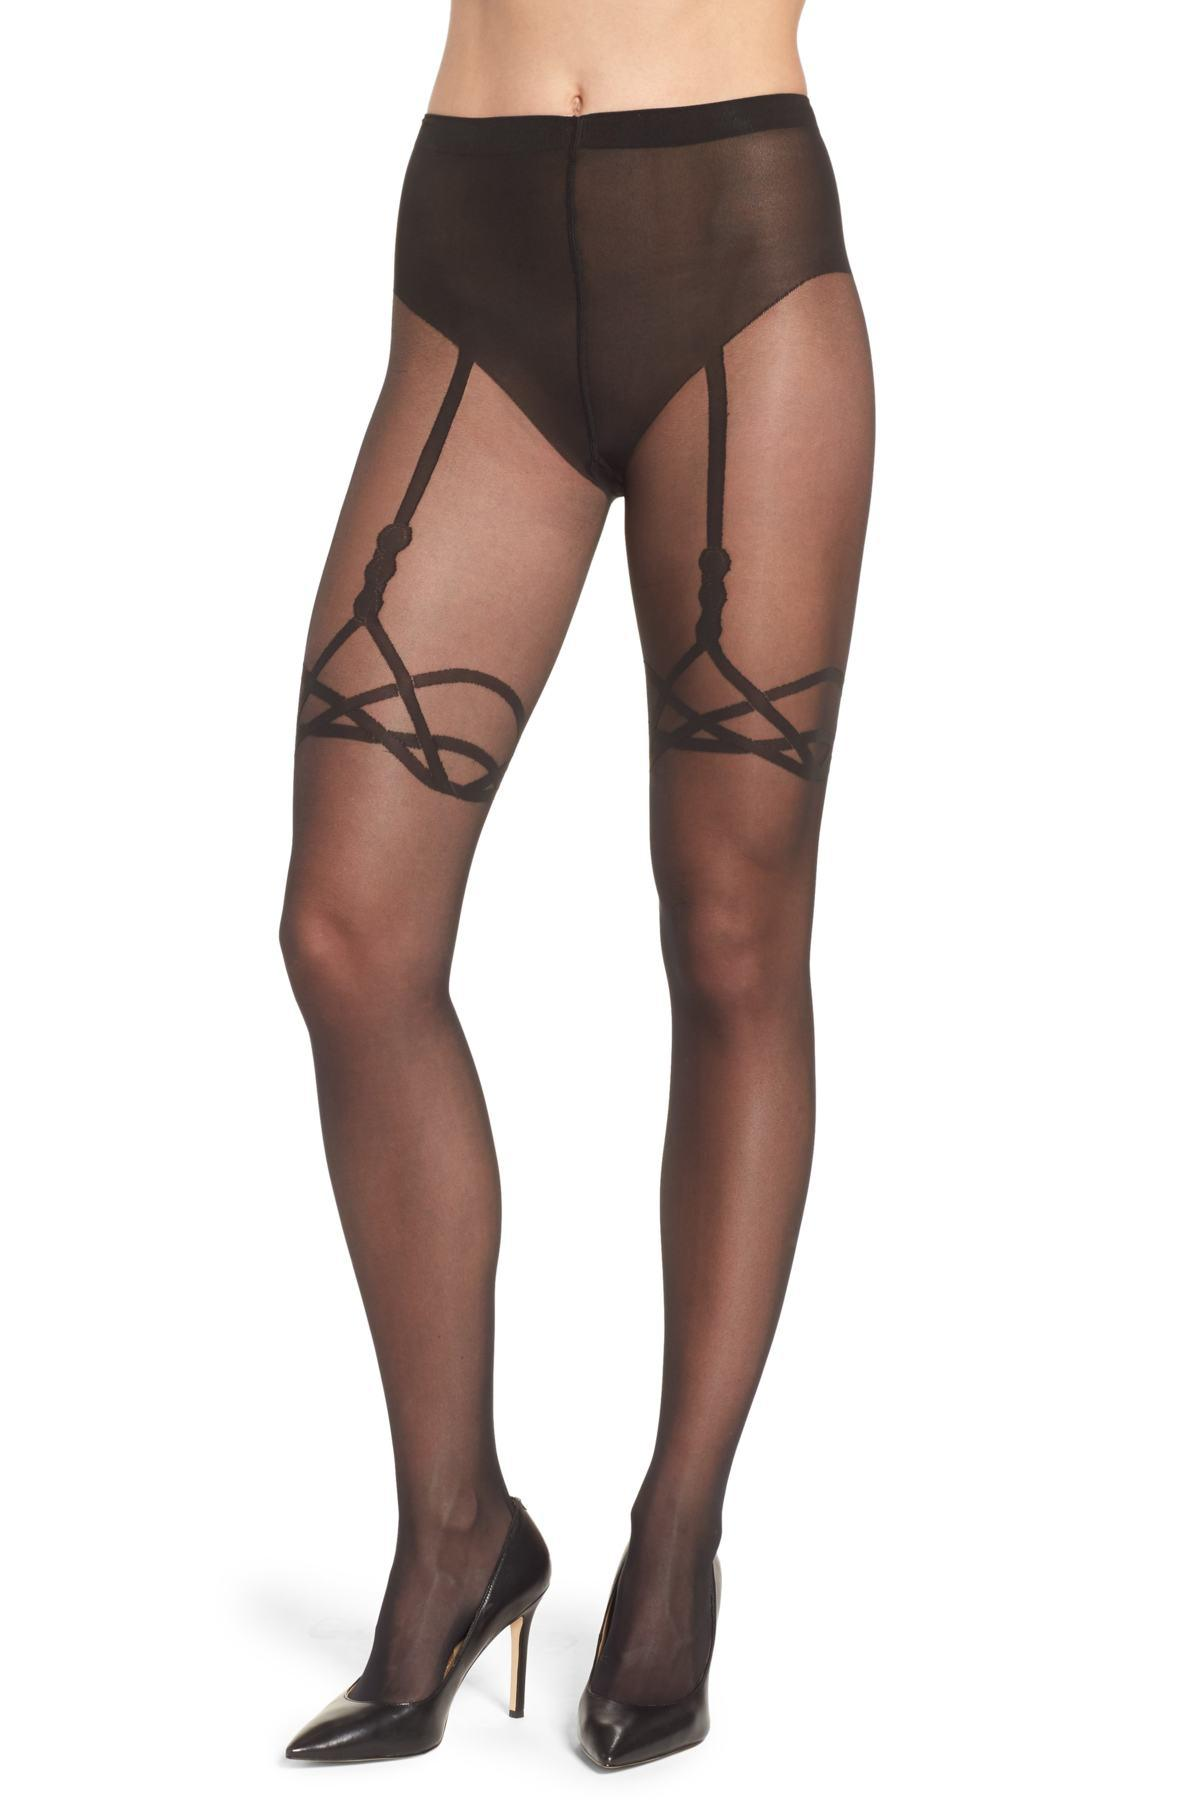 92304b616c3 Wolford Katy Suspender Tights in Black - Lyst